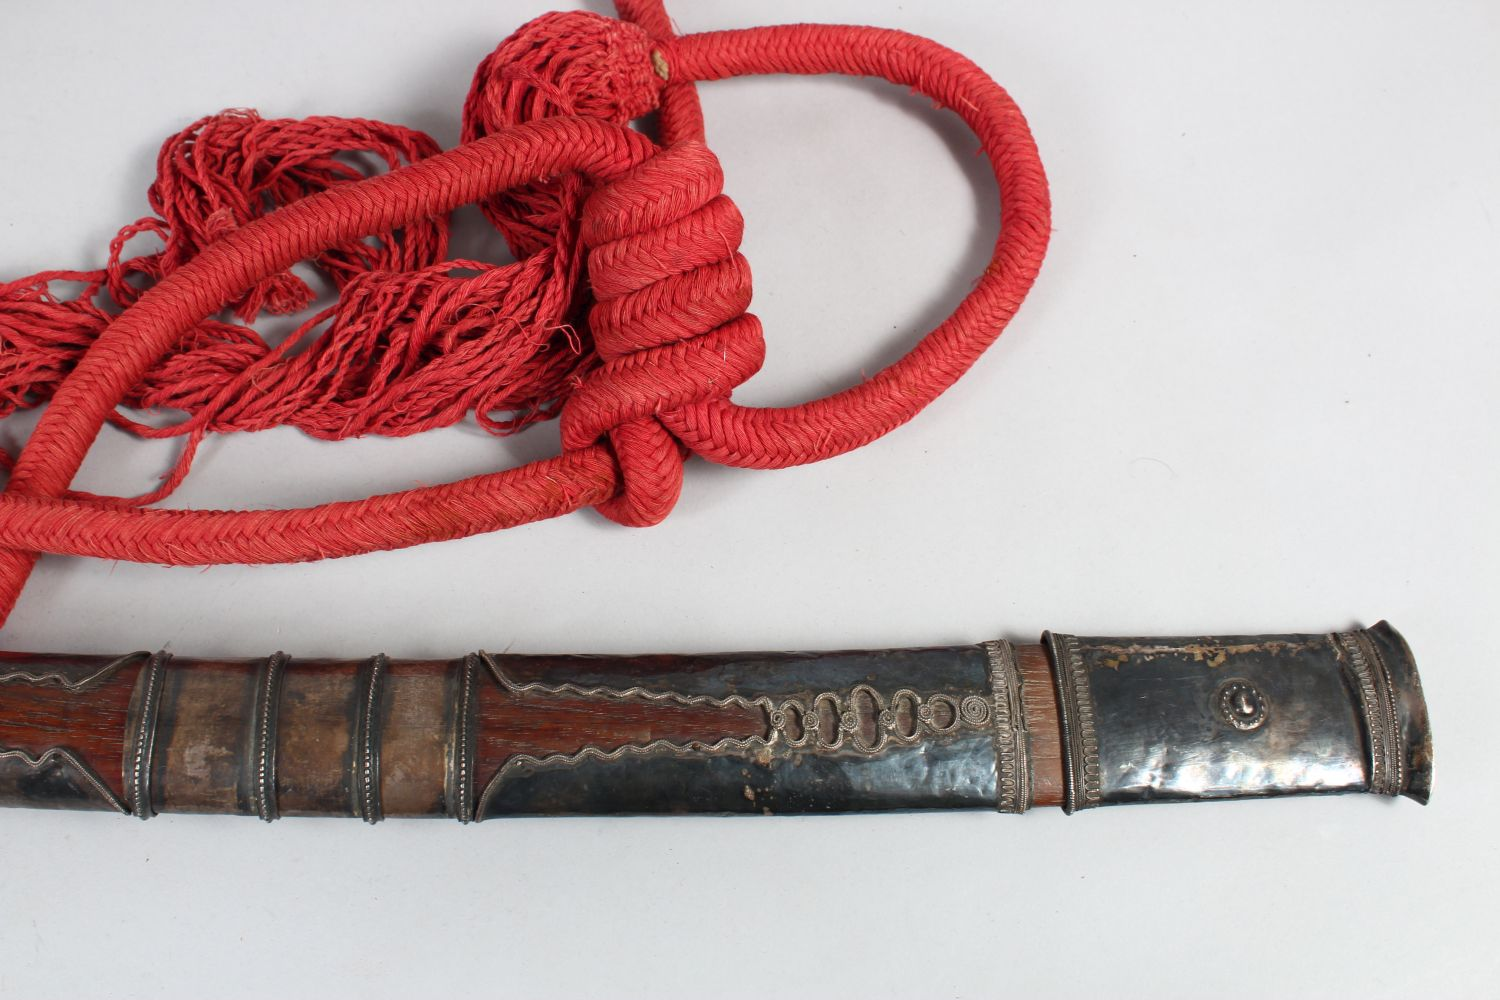 Lot 28 - A 19TH CENTURY BURMESE IVORY HILTED SILVER MOUNTED DHA SWORD, with metal scabbard and rope, 84cm